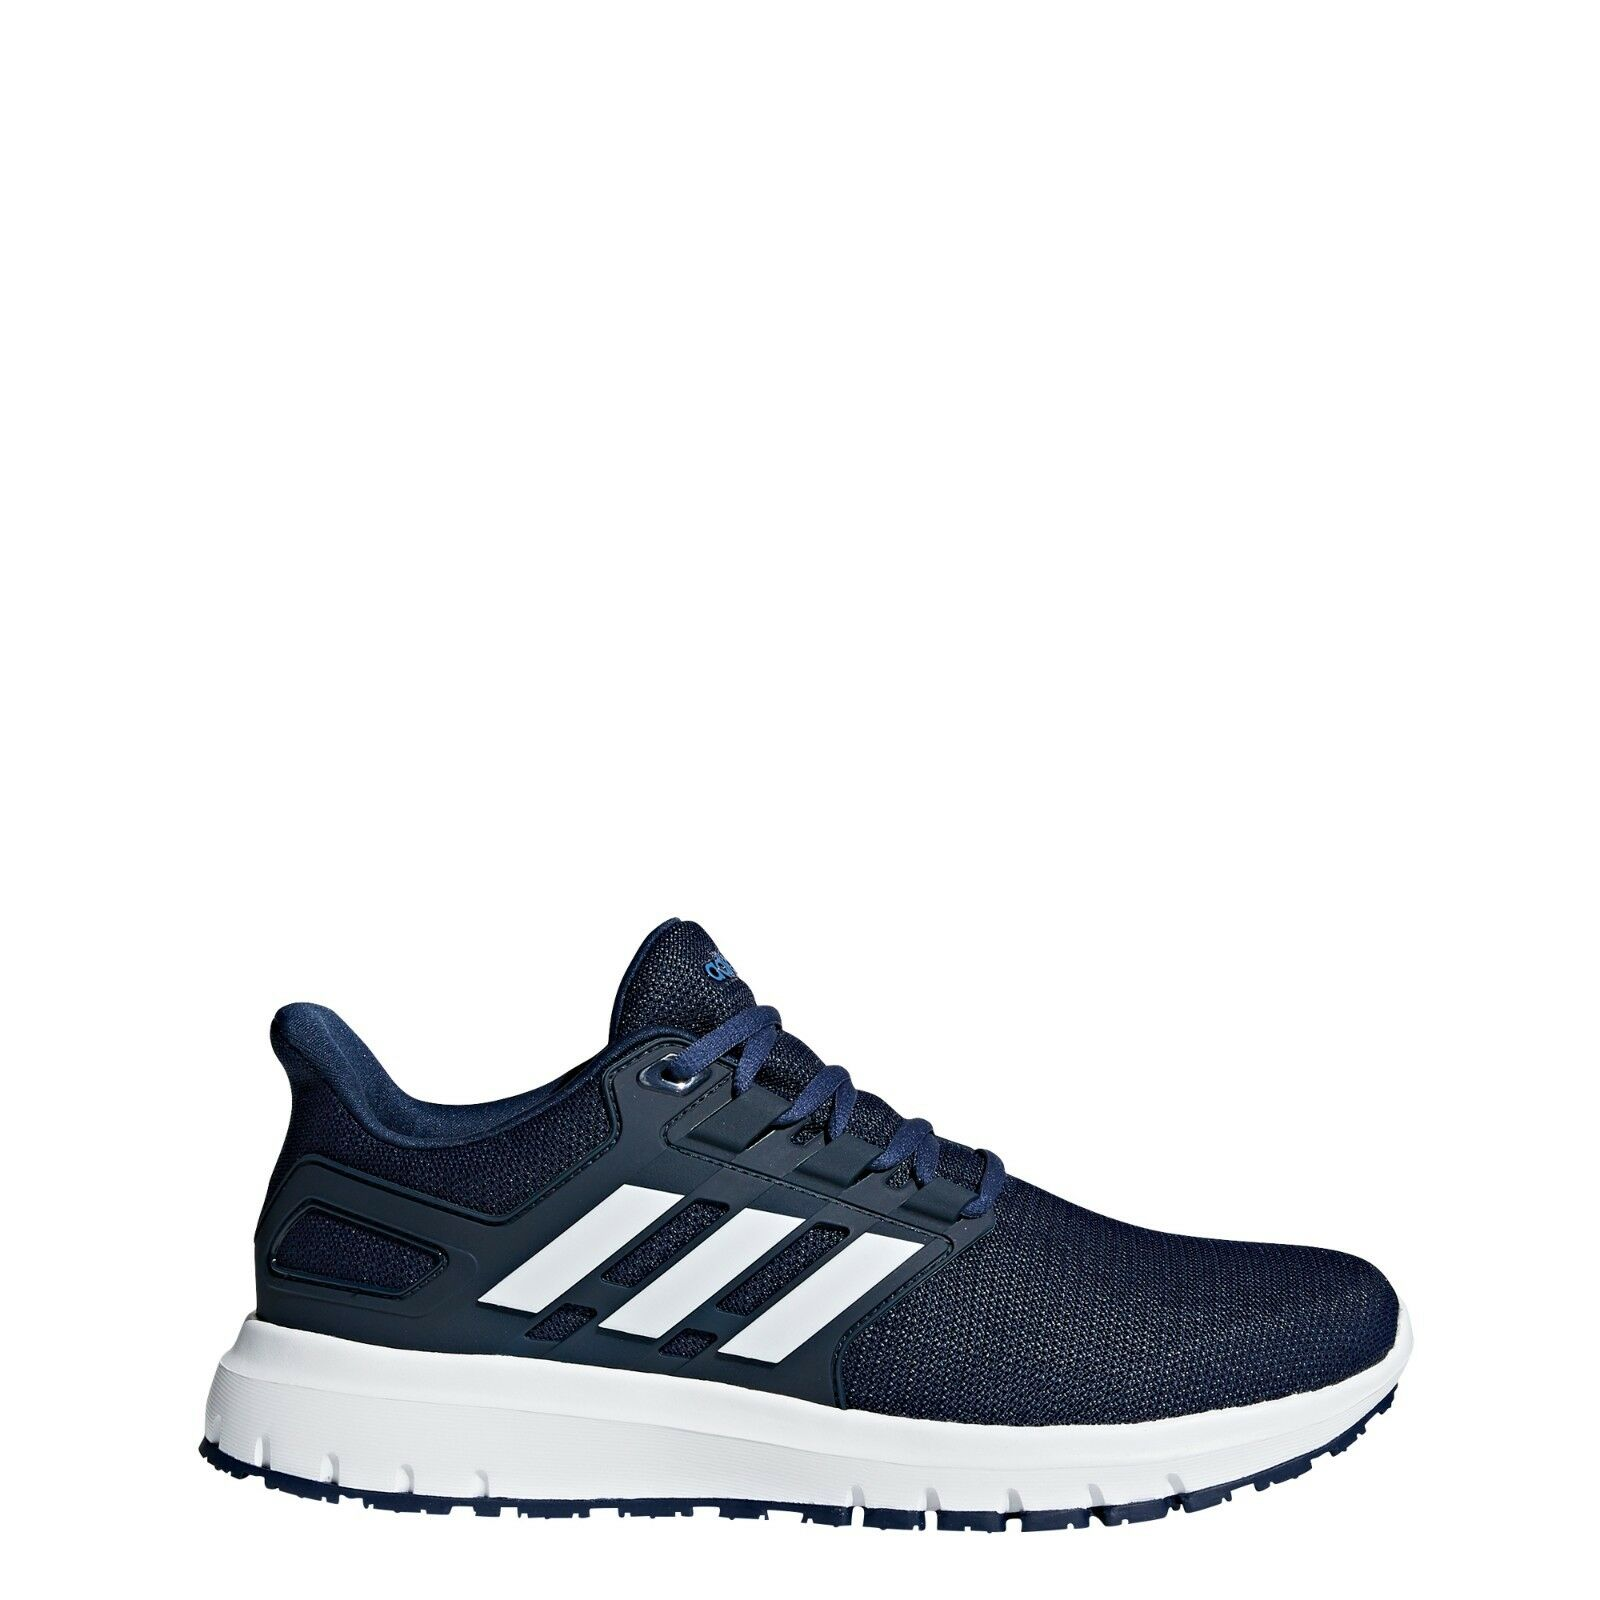 Adidas Men shoes Energy Cloud 2 Training Fitness Fashion CP9769 Trainers